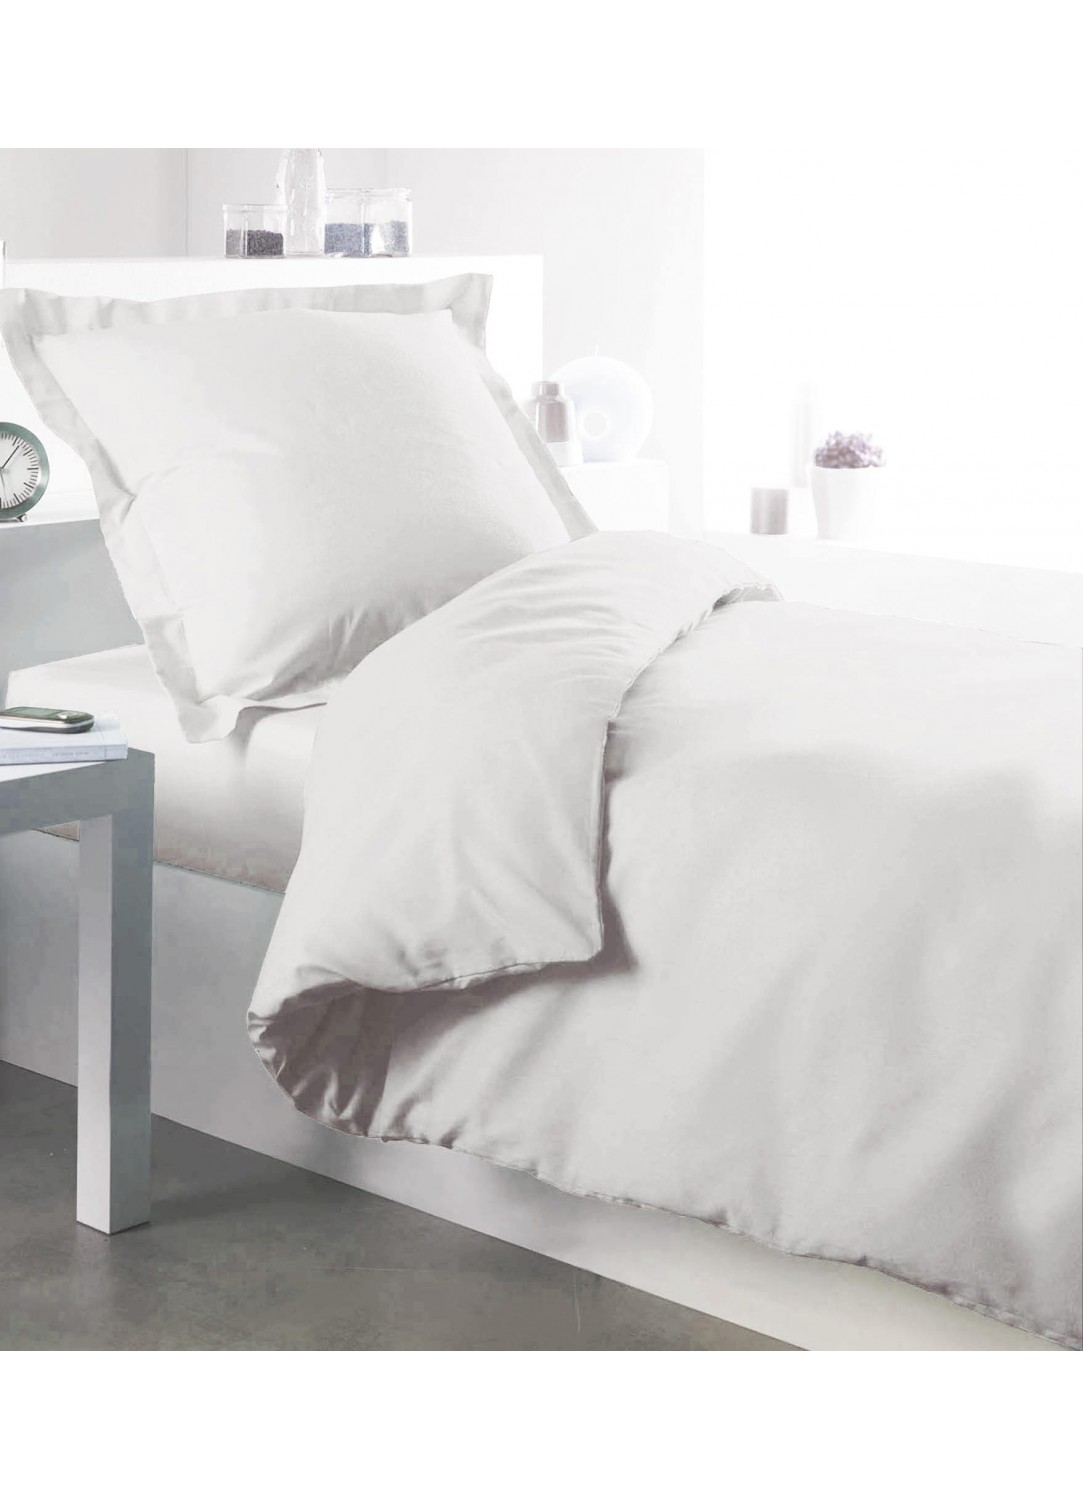 housse de couette percale 140 x 200 cm blanc. Black Bedroom Furniture Sets. Home Design Ideas